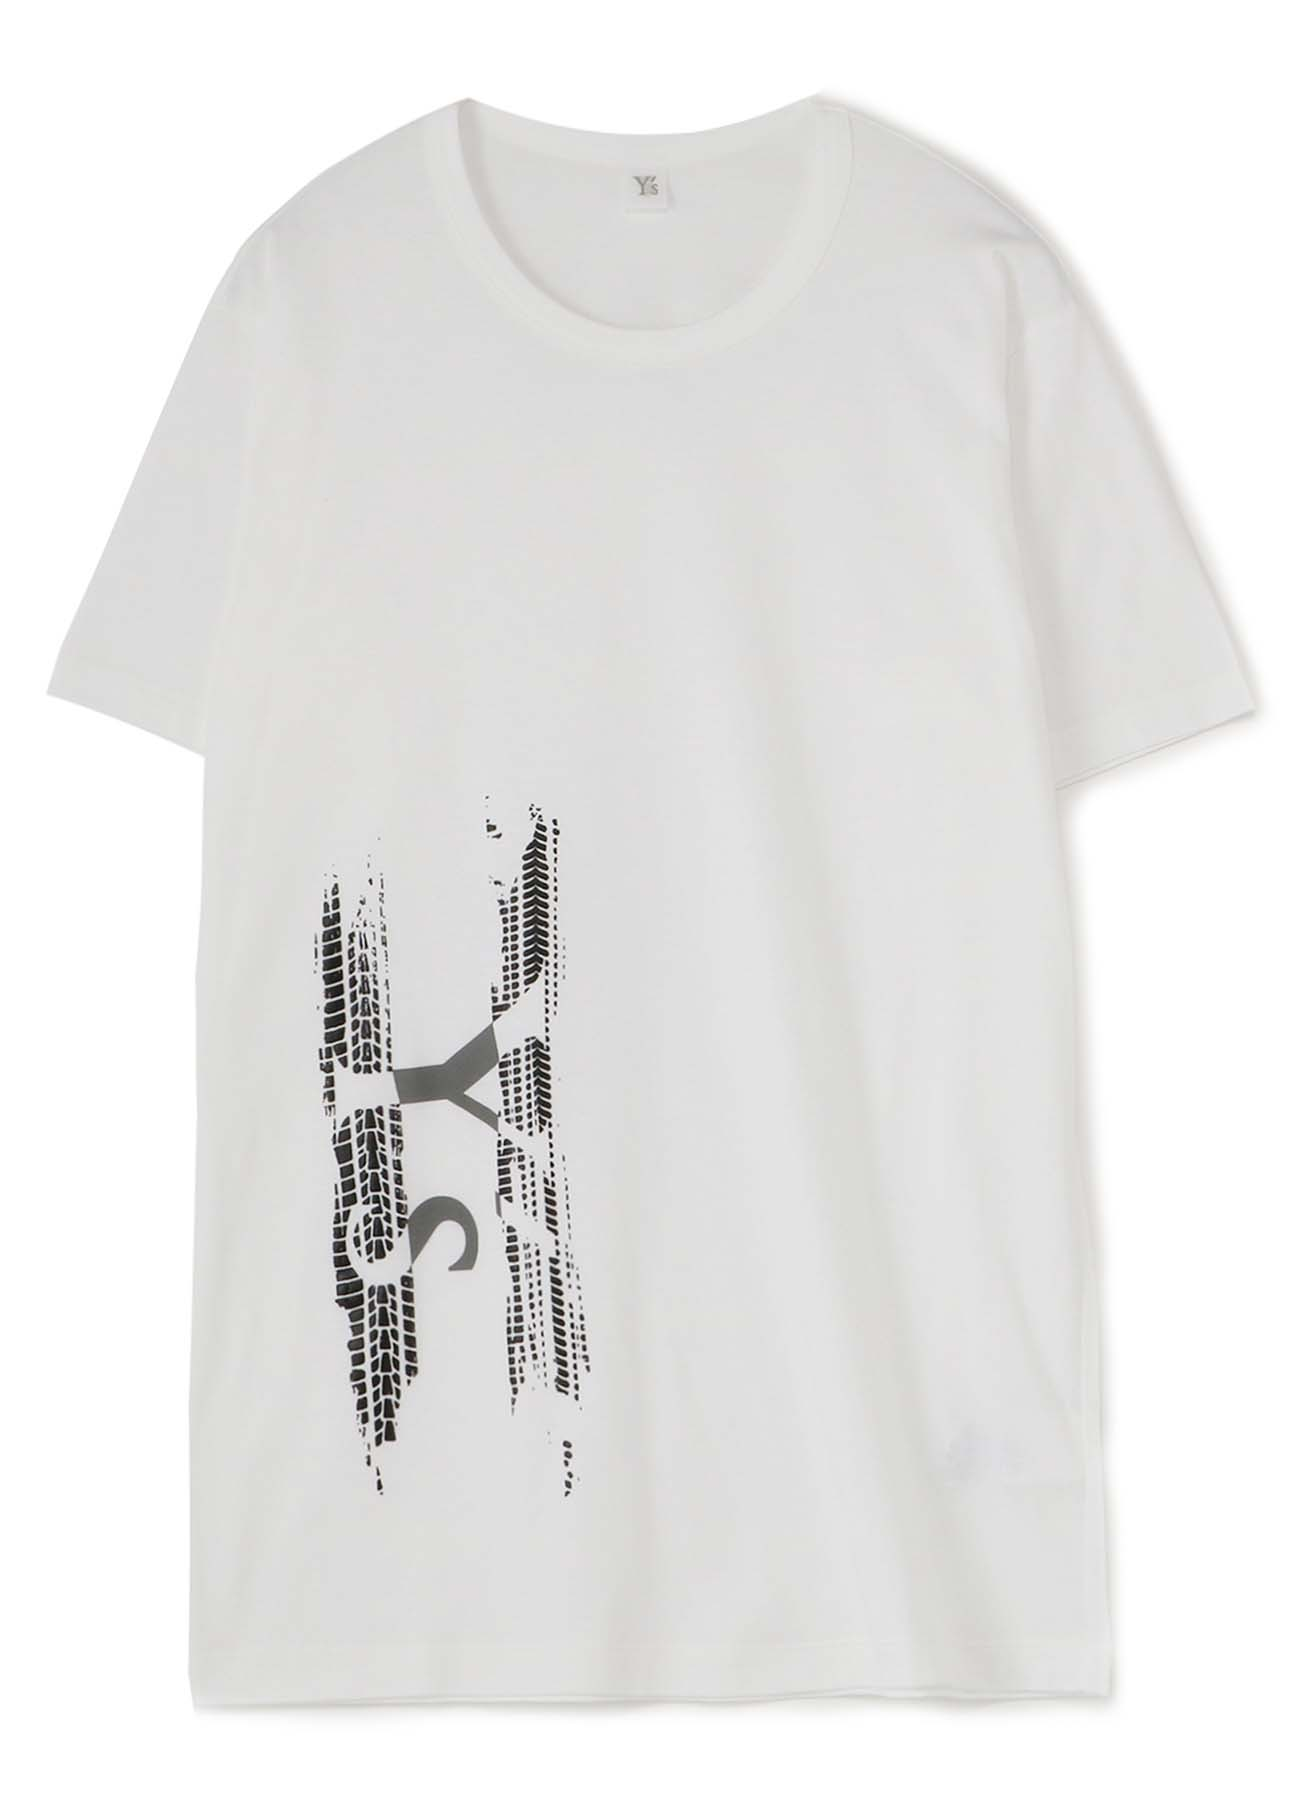 Y's TIRE PIGMENT PRINT ROUND NECK SHORT SLEEVE T-SHIRT